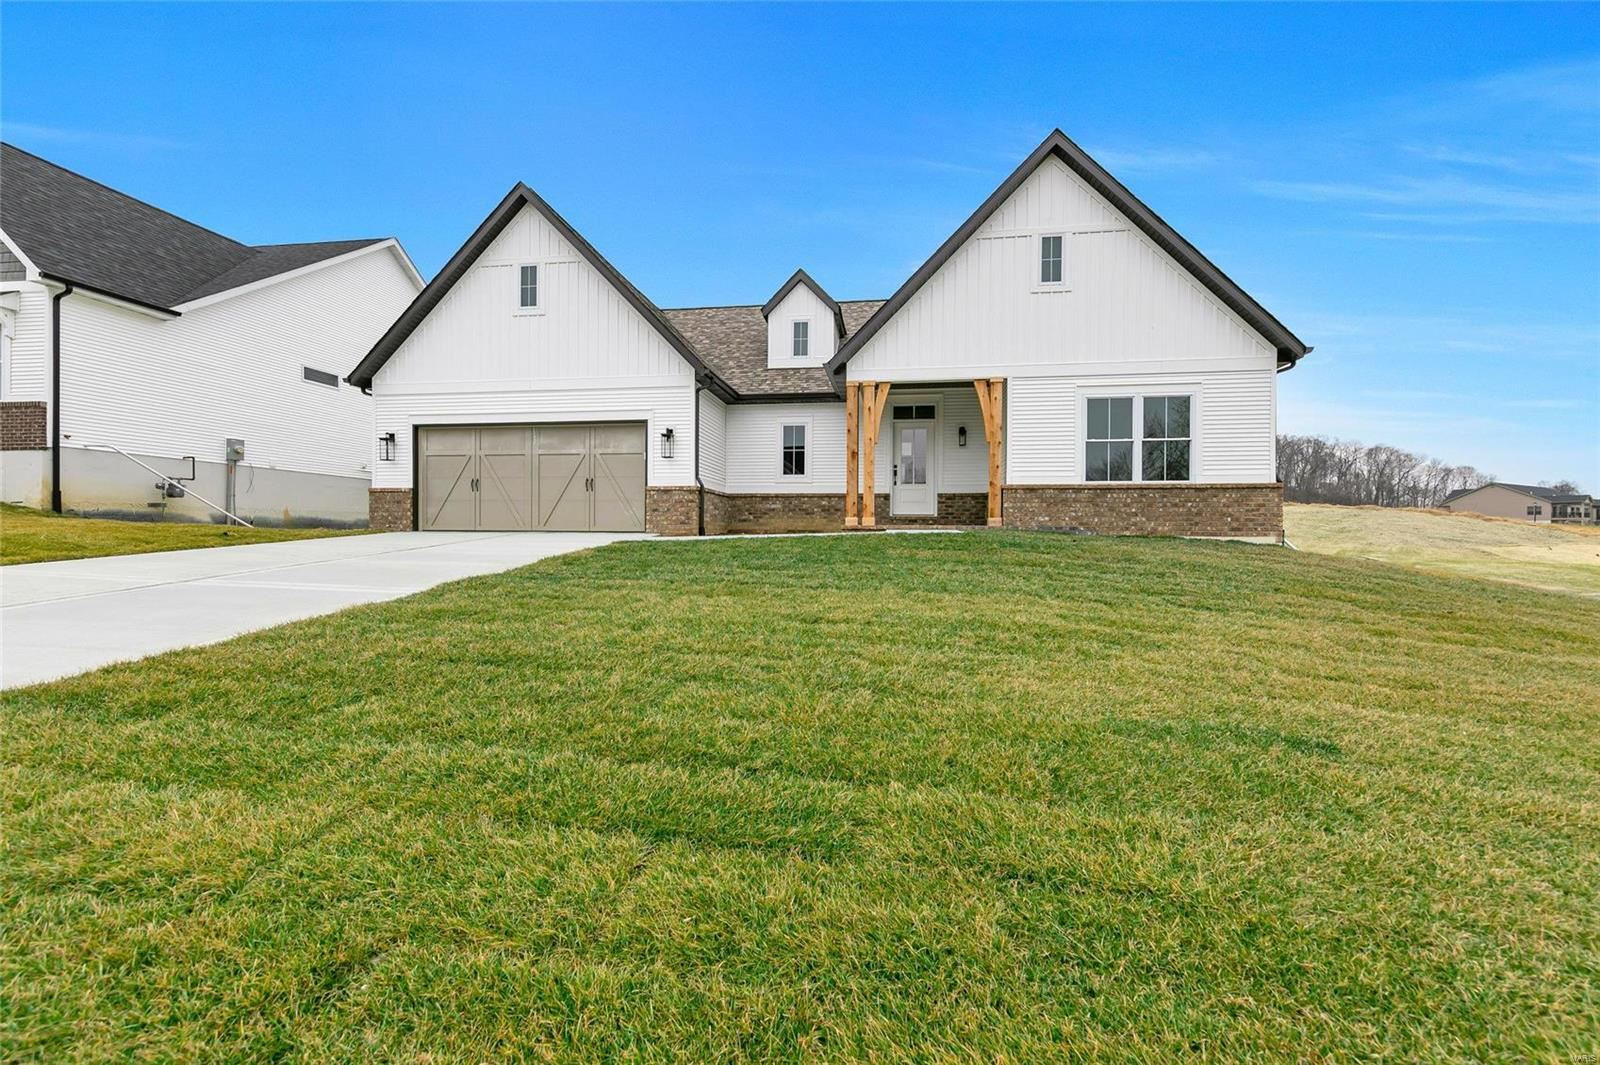 7975 Donner Ridge, Caseyville, IL 62232 - MLS#: 19043398